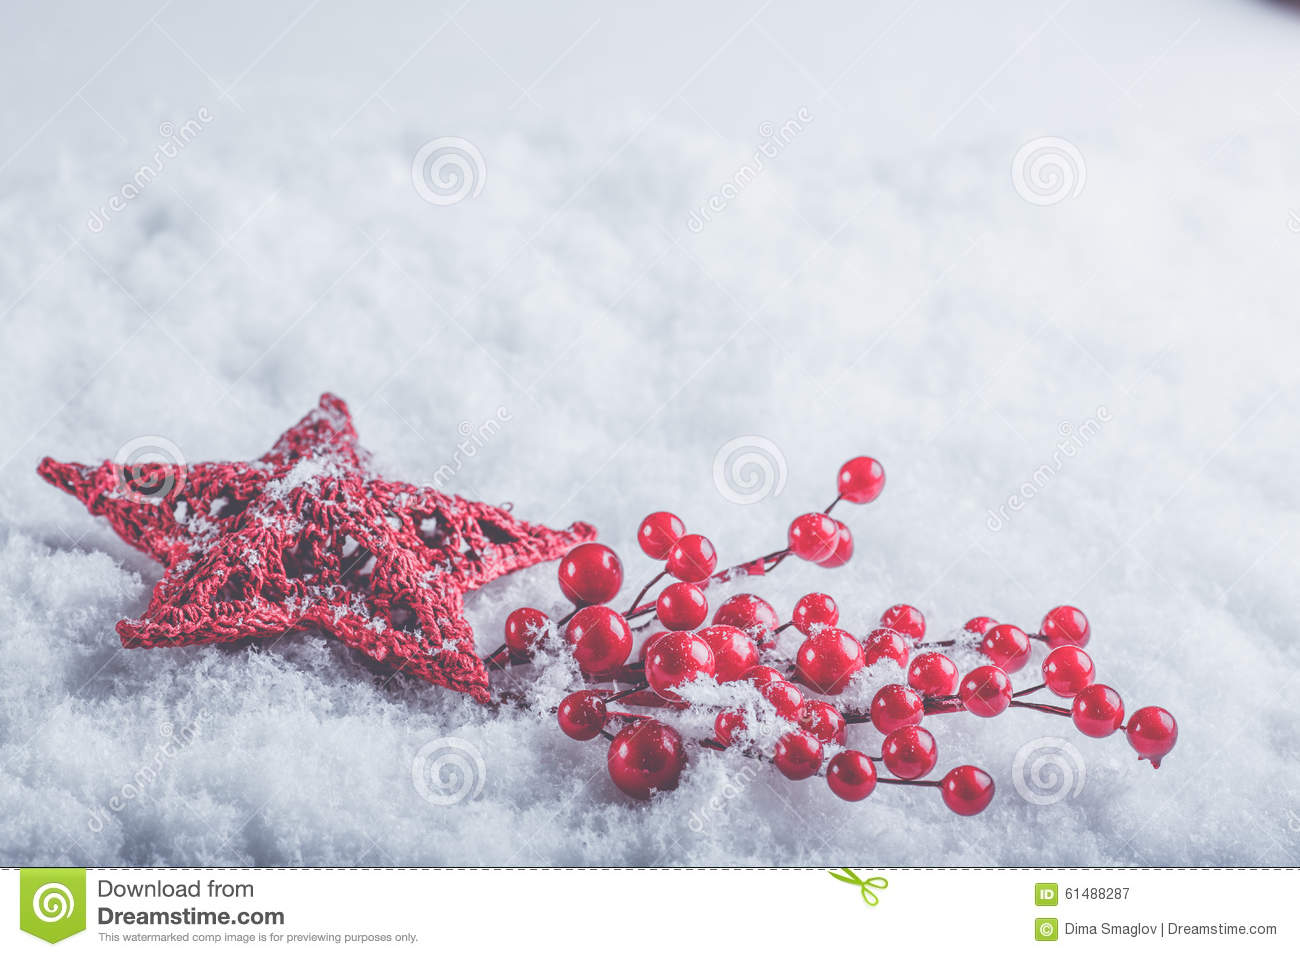 Beautiful christmas snow pictures the snow on christmas day in - Beautiful Romantic Vintage Red Heart With Mistletoe Berries On A White Snow Christmas Love